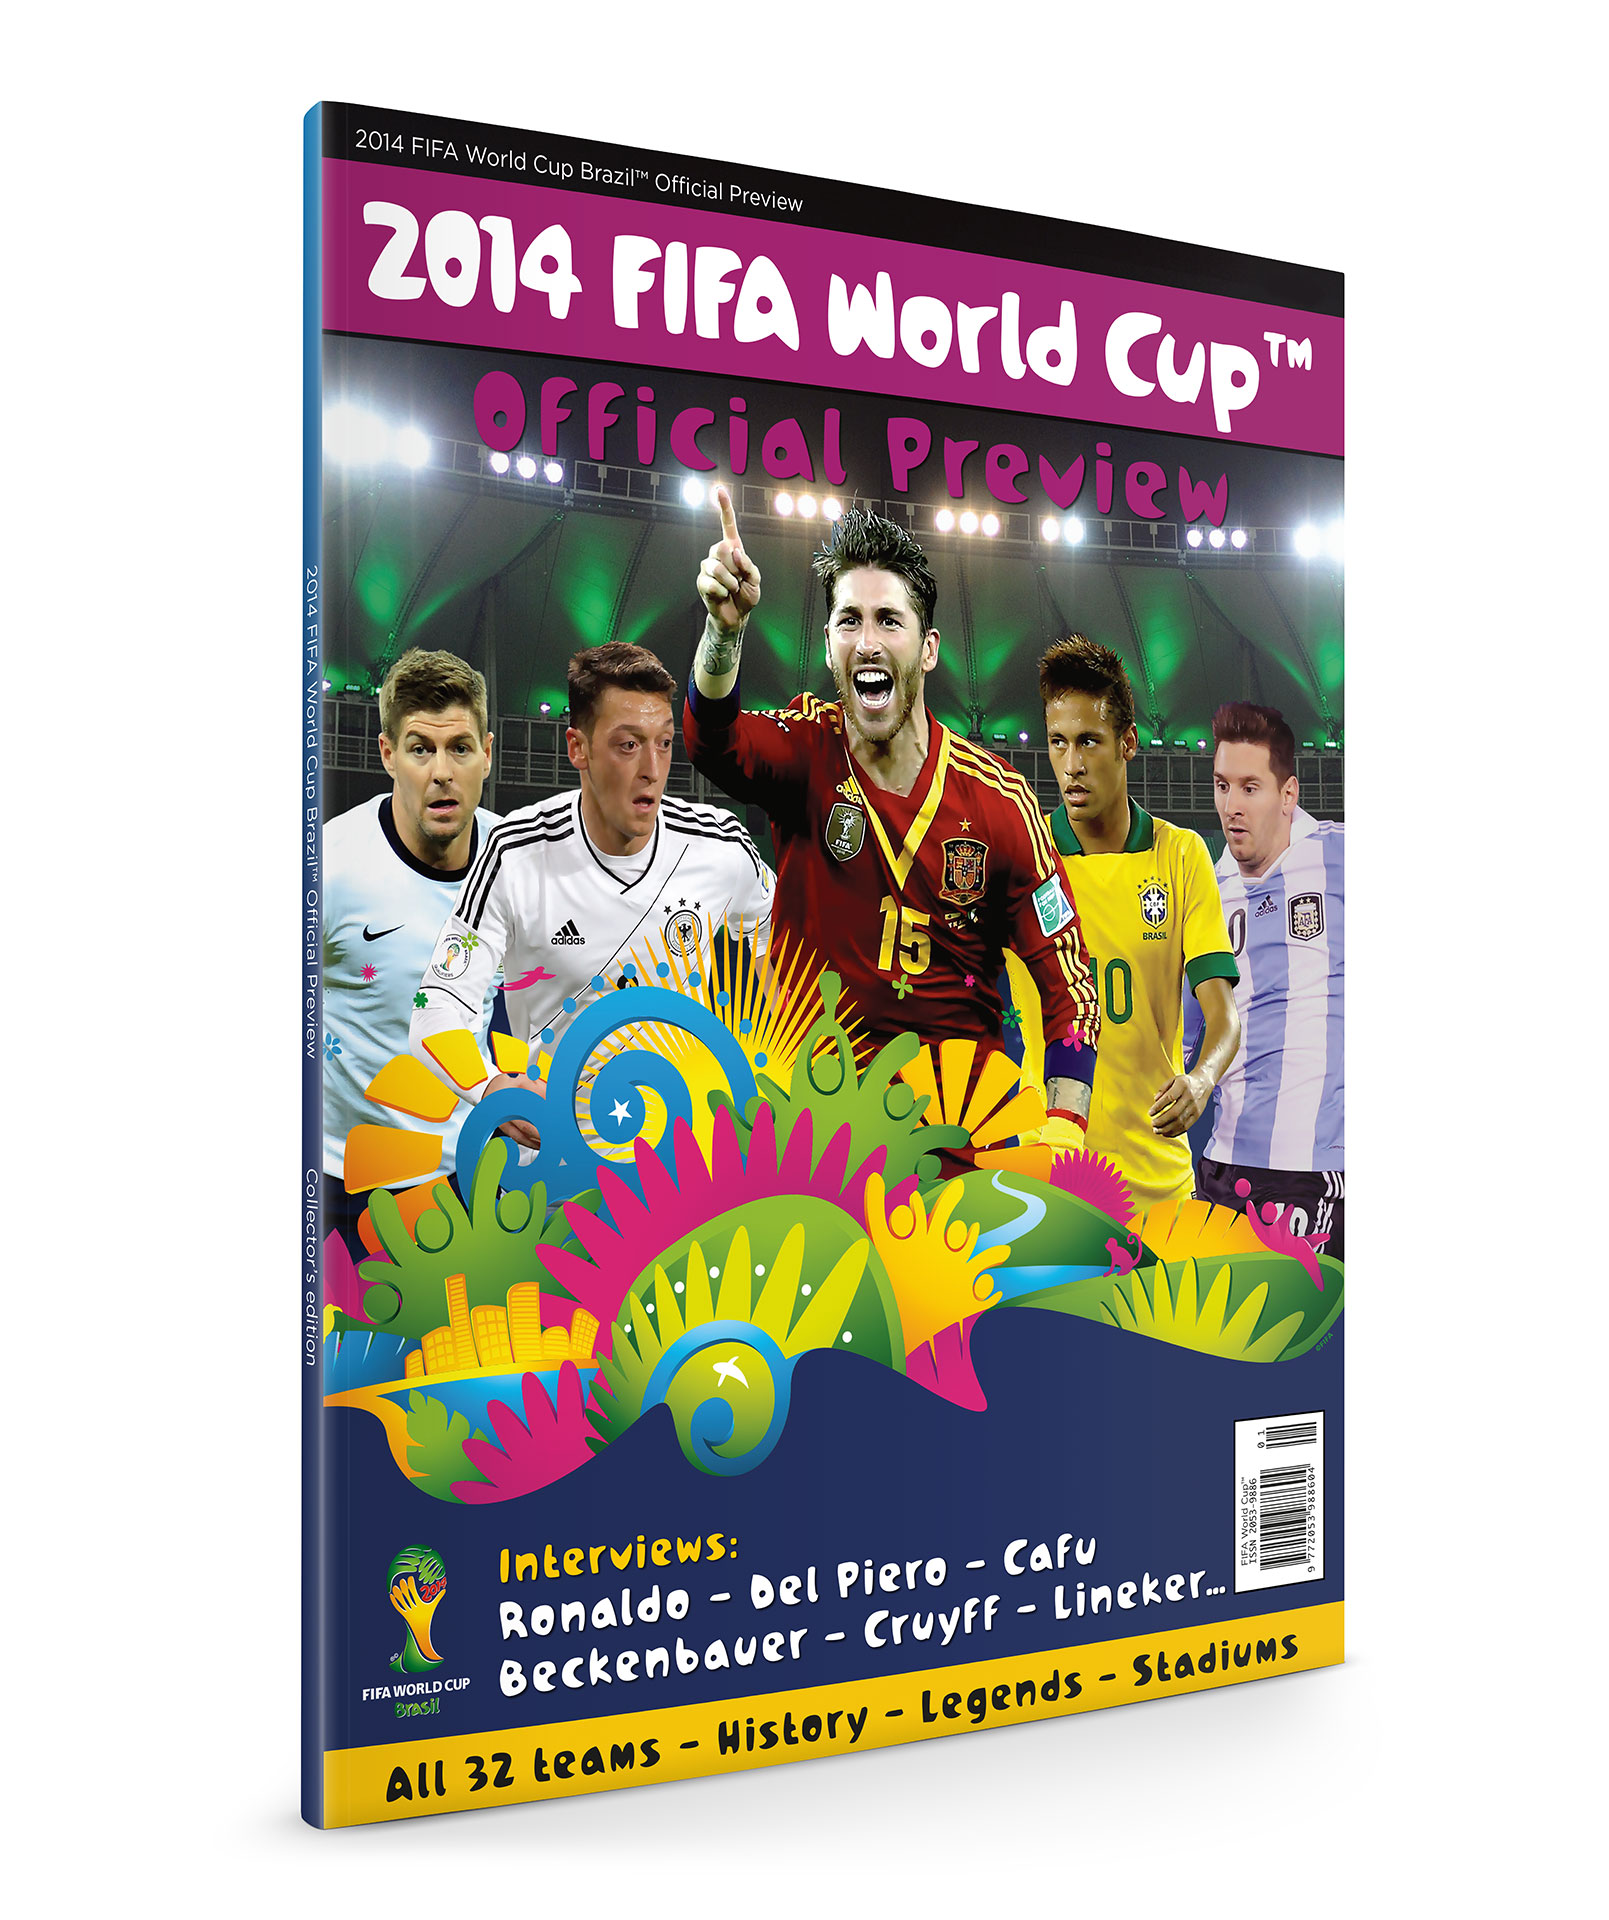 2014 FIFA World Cup - Official Preview